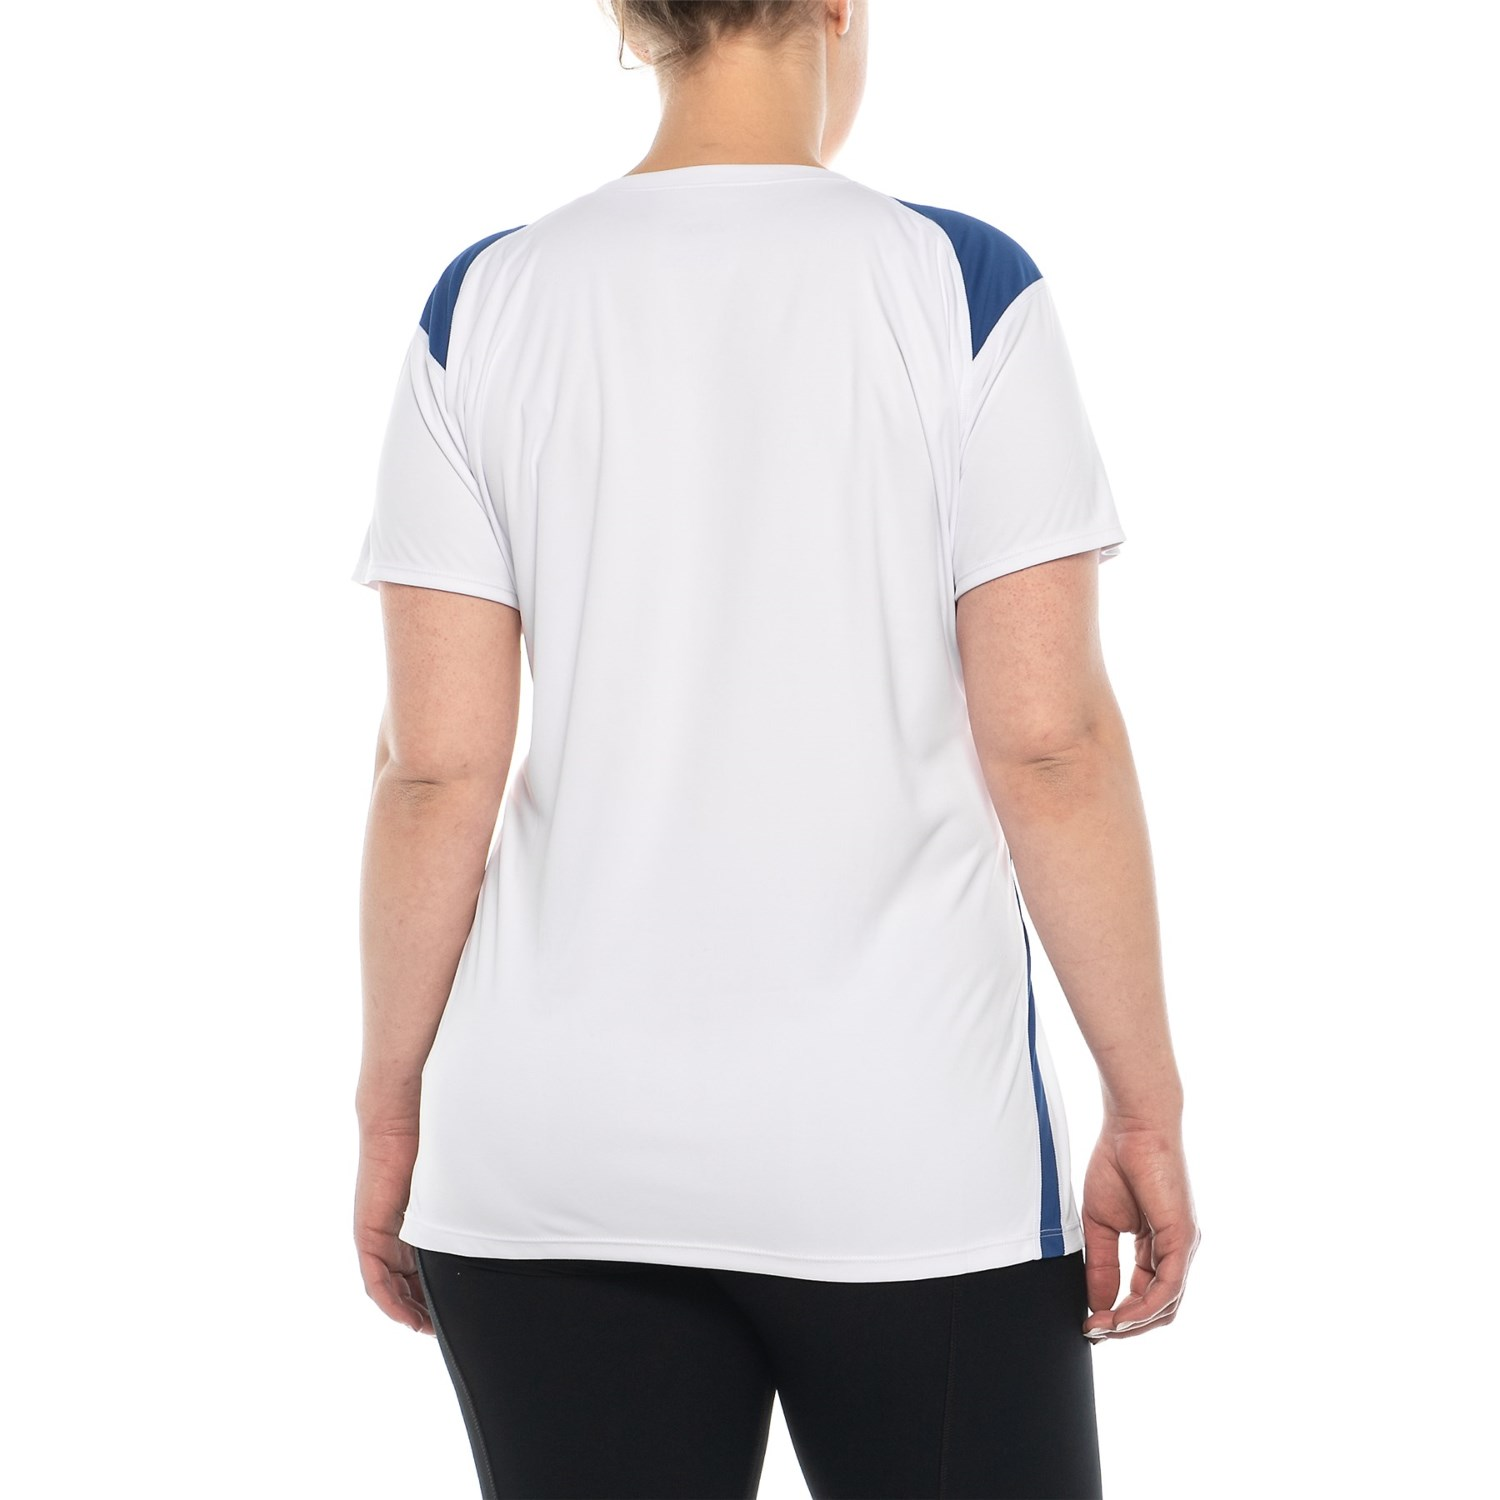 740e34ecb27 ASICS Set Volleyball Jersey - Short Sleeve (For Women)